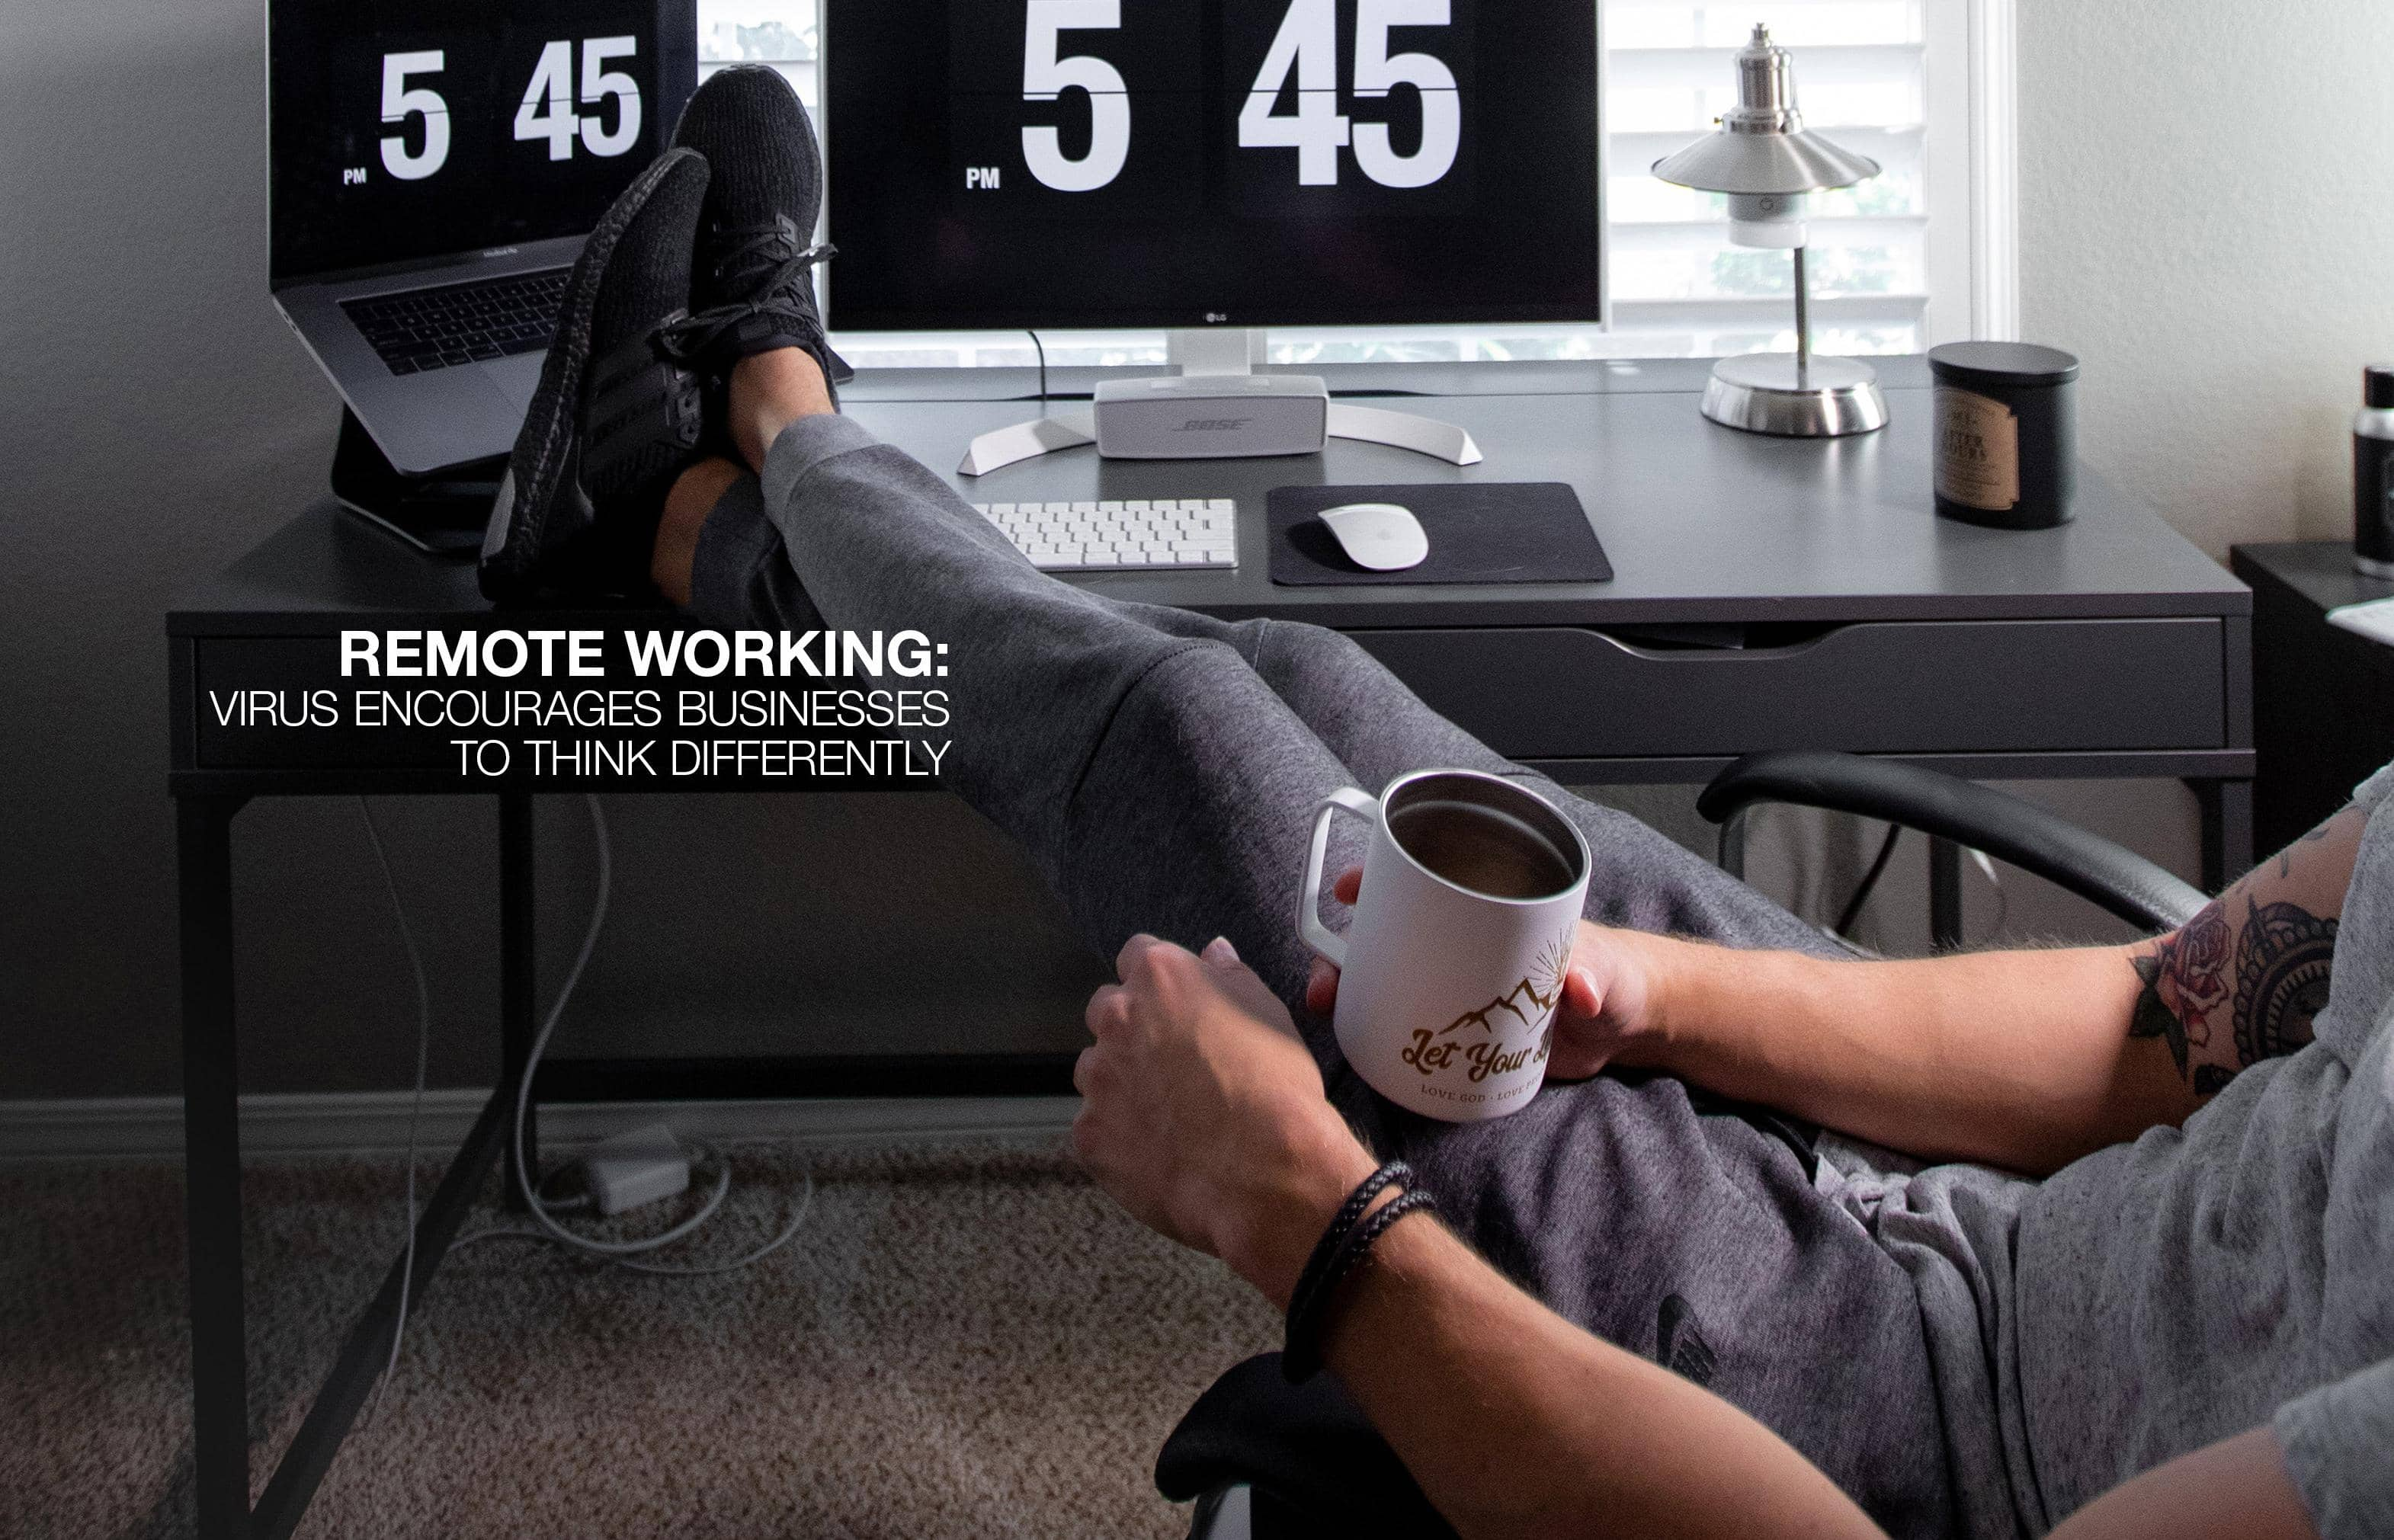 REMOTE WORKING: VIRUS ENCOURAGES BUSINESSES TO THINK DIFFERENTLY